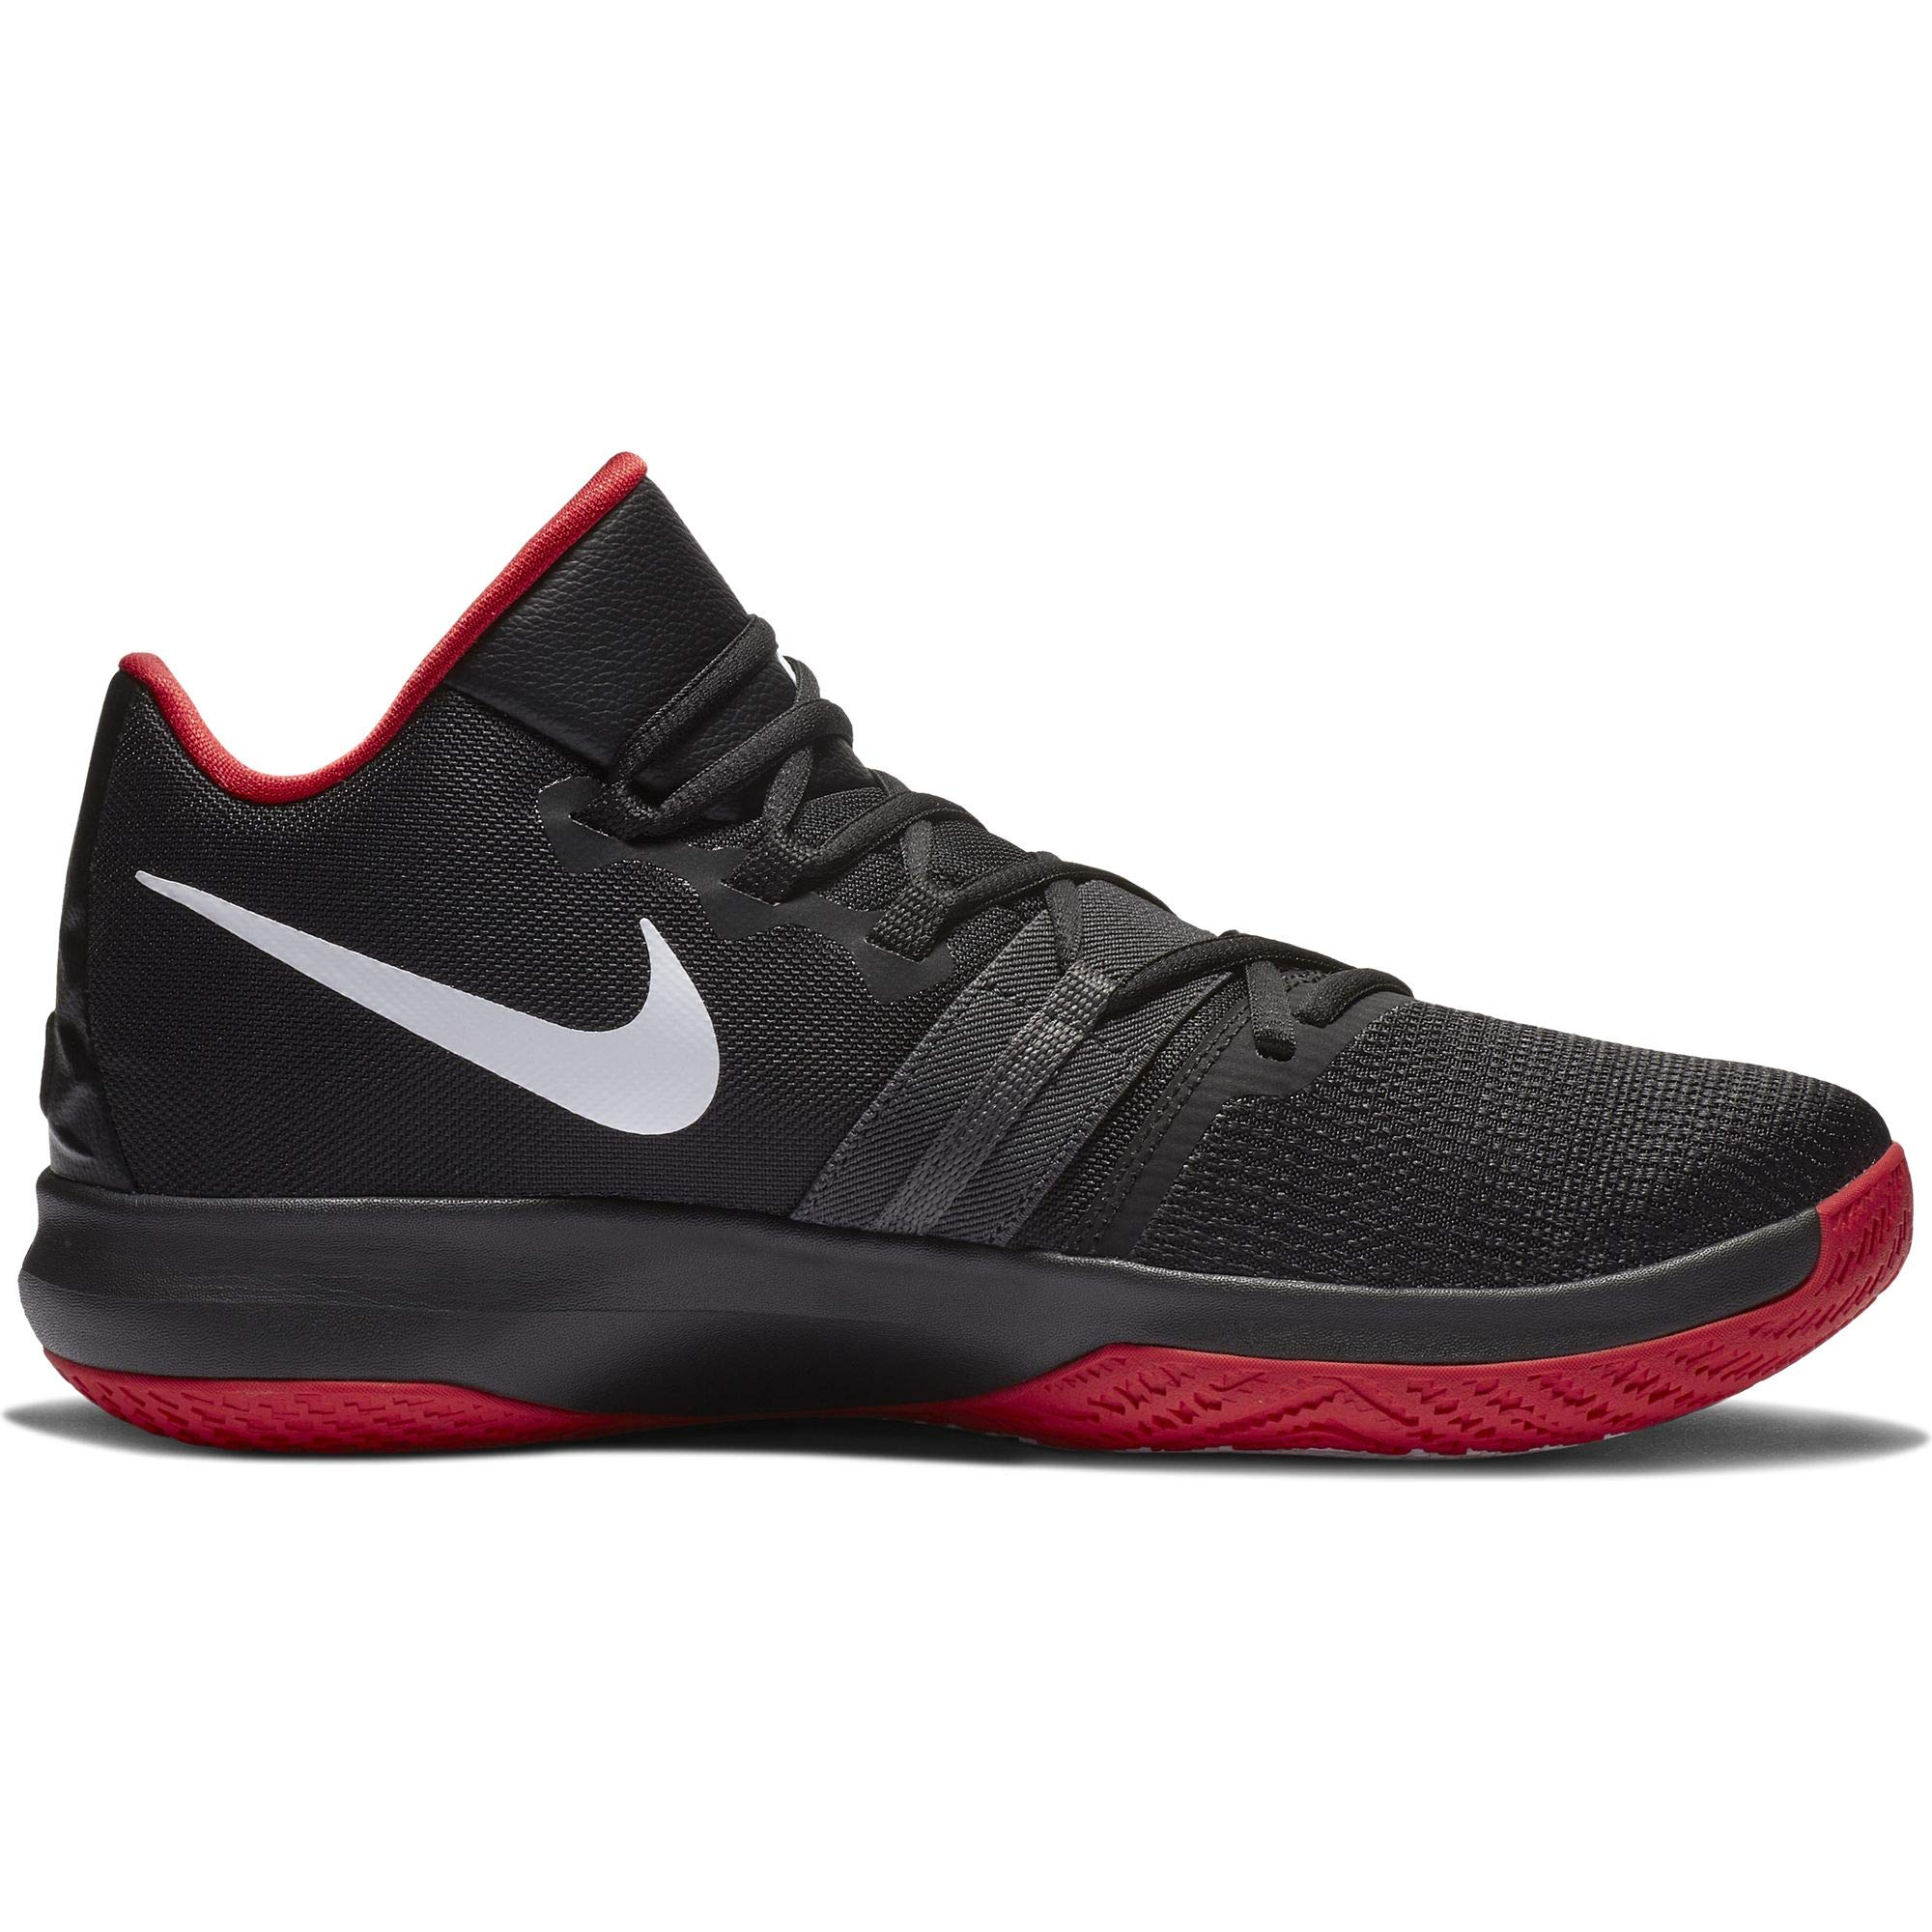 Nike Men Kyrie Flytrap Basketball High Top Sneakers From Finish Line Black White Red Us 11